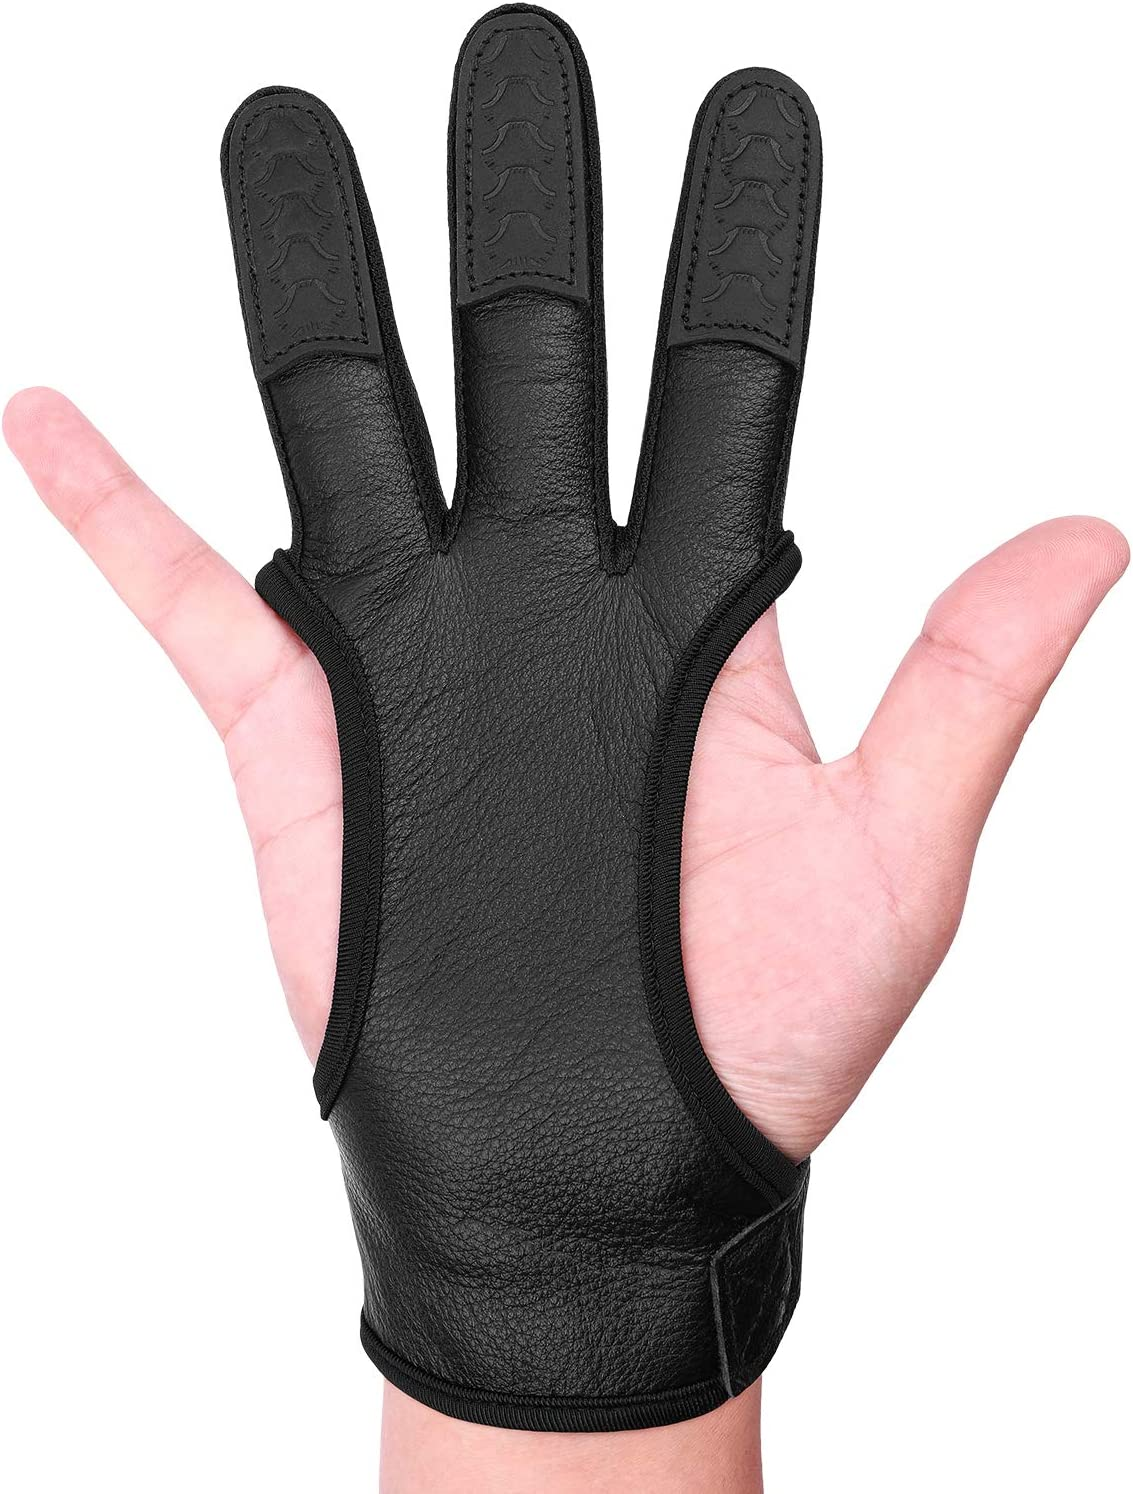 Archery 3 Finger Glove Guard Protector Gear Leather Compound Recurve Bow Hunting